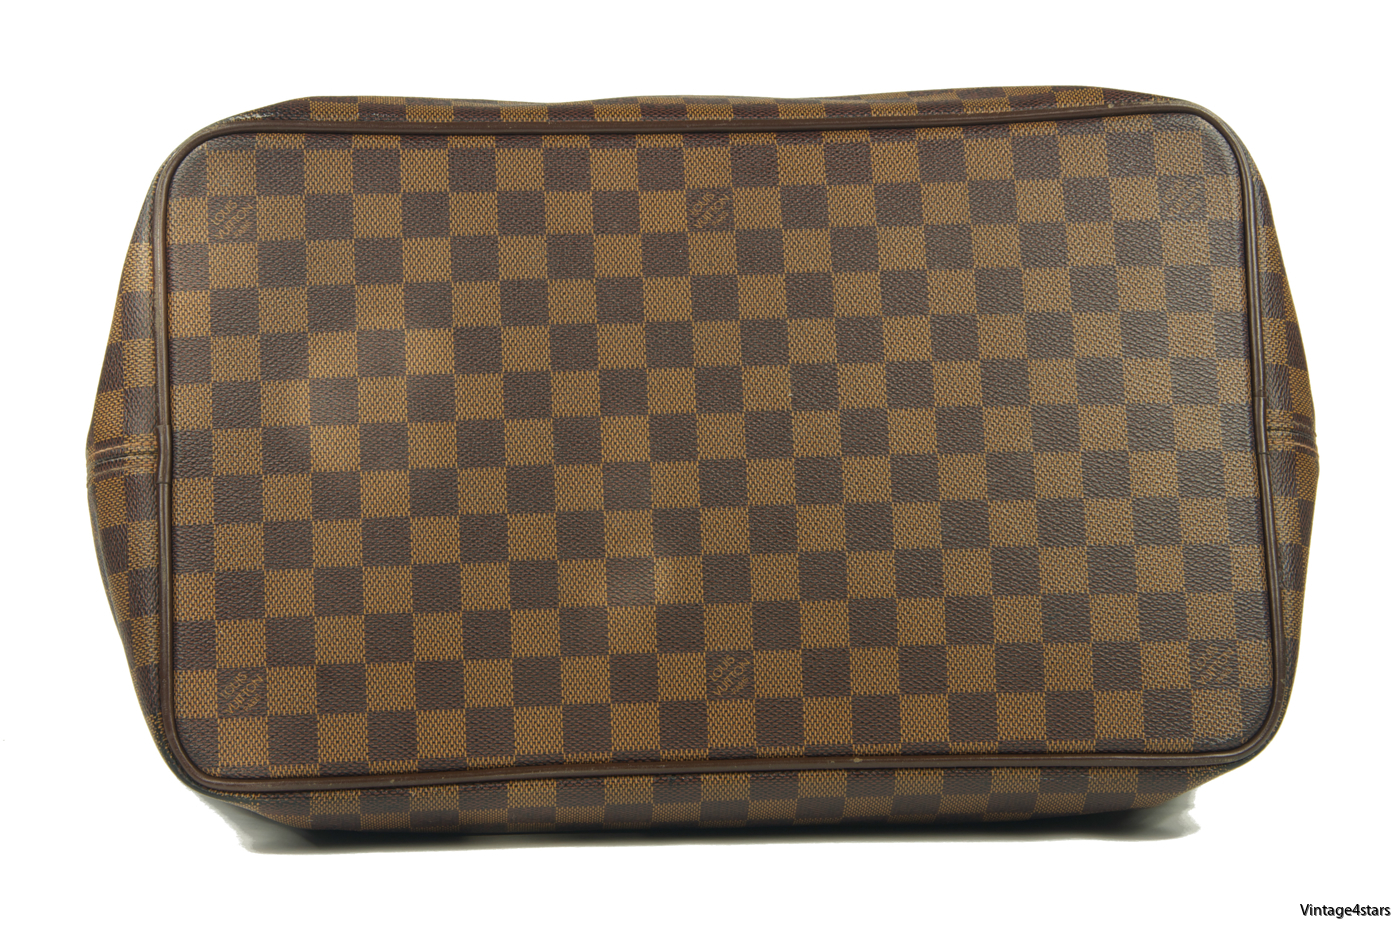 Louis Vuitton Greenwich PM 9